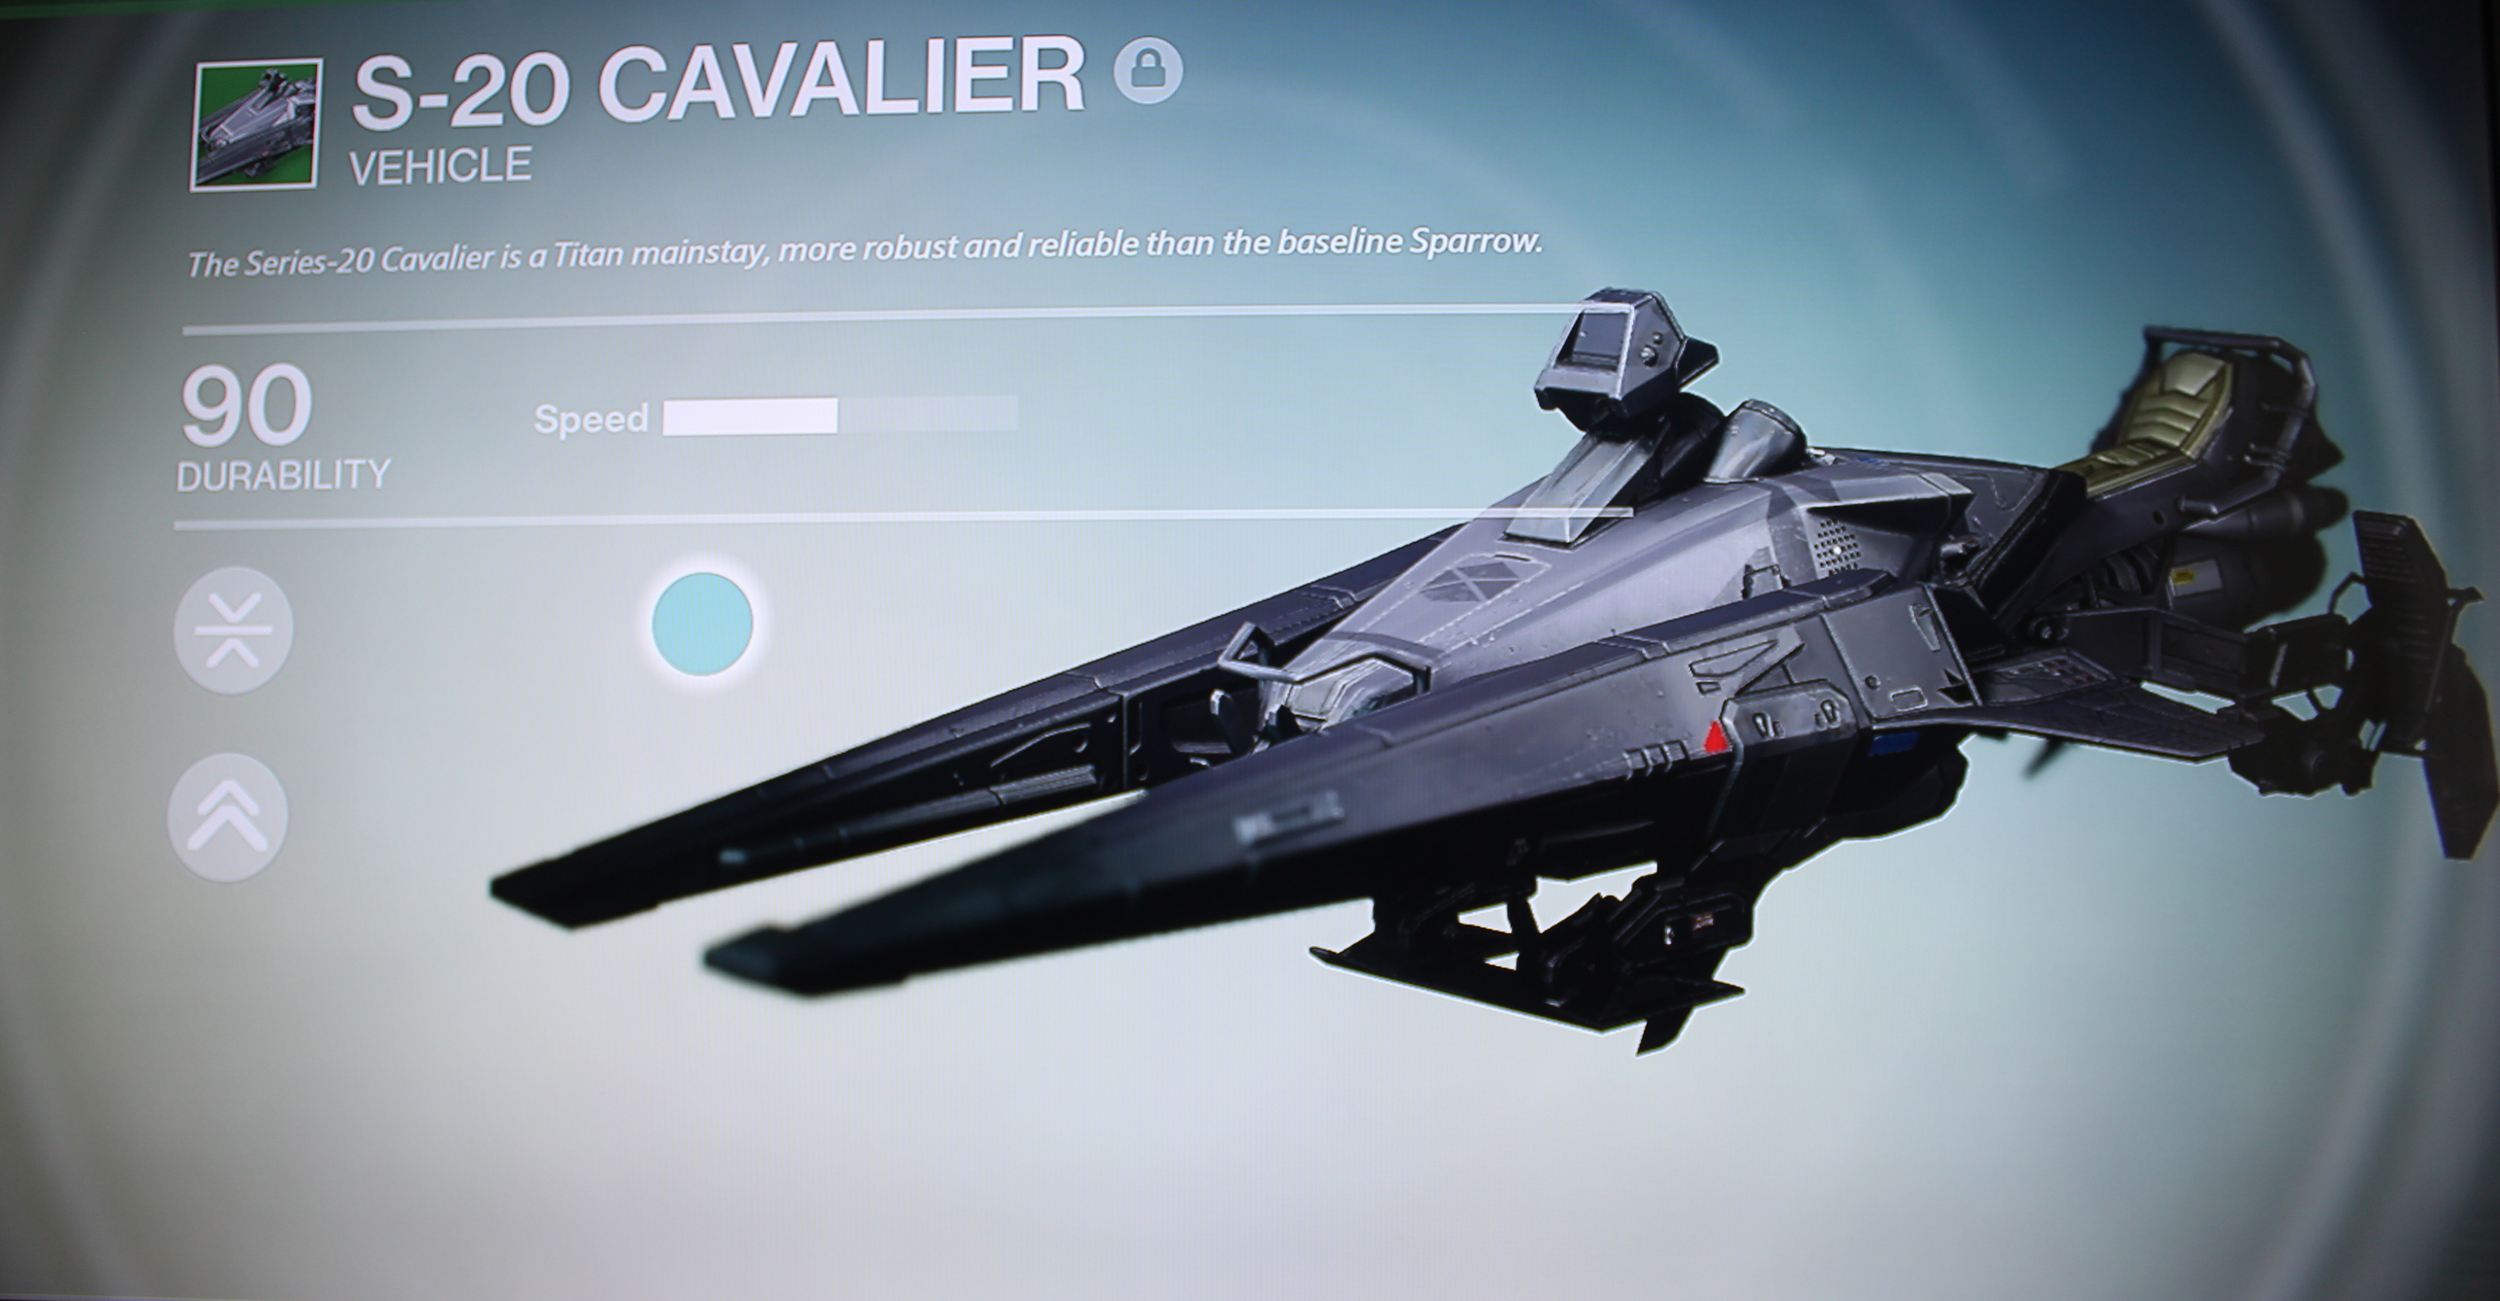 Destiny Black Sparrow S-20 Cavalier